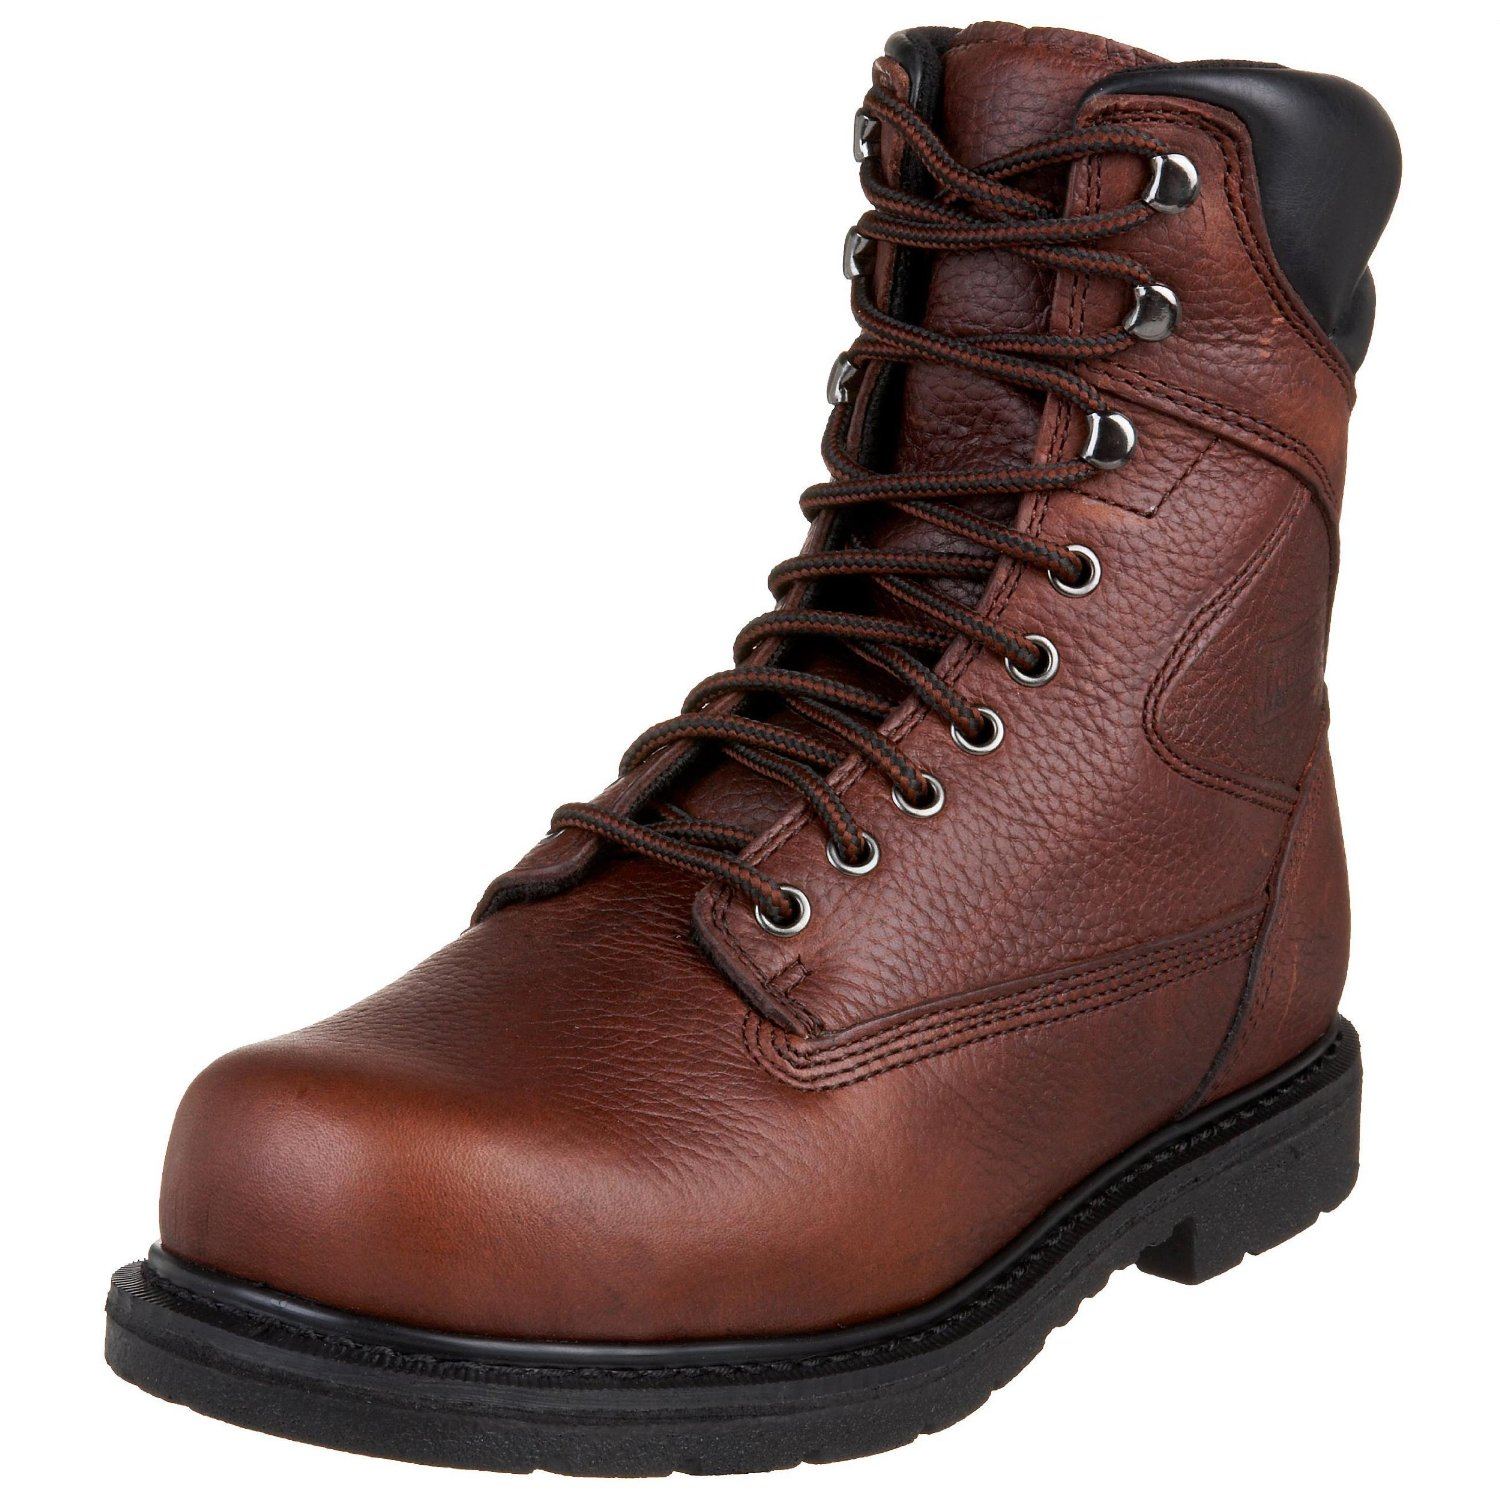 Red Wing Worx By Red Wing Shoes Mens Oblique Toe Steel Toe